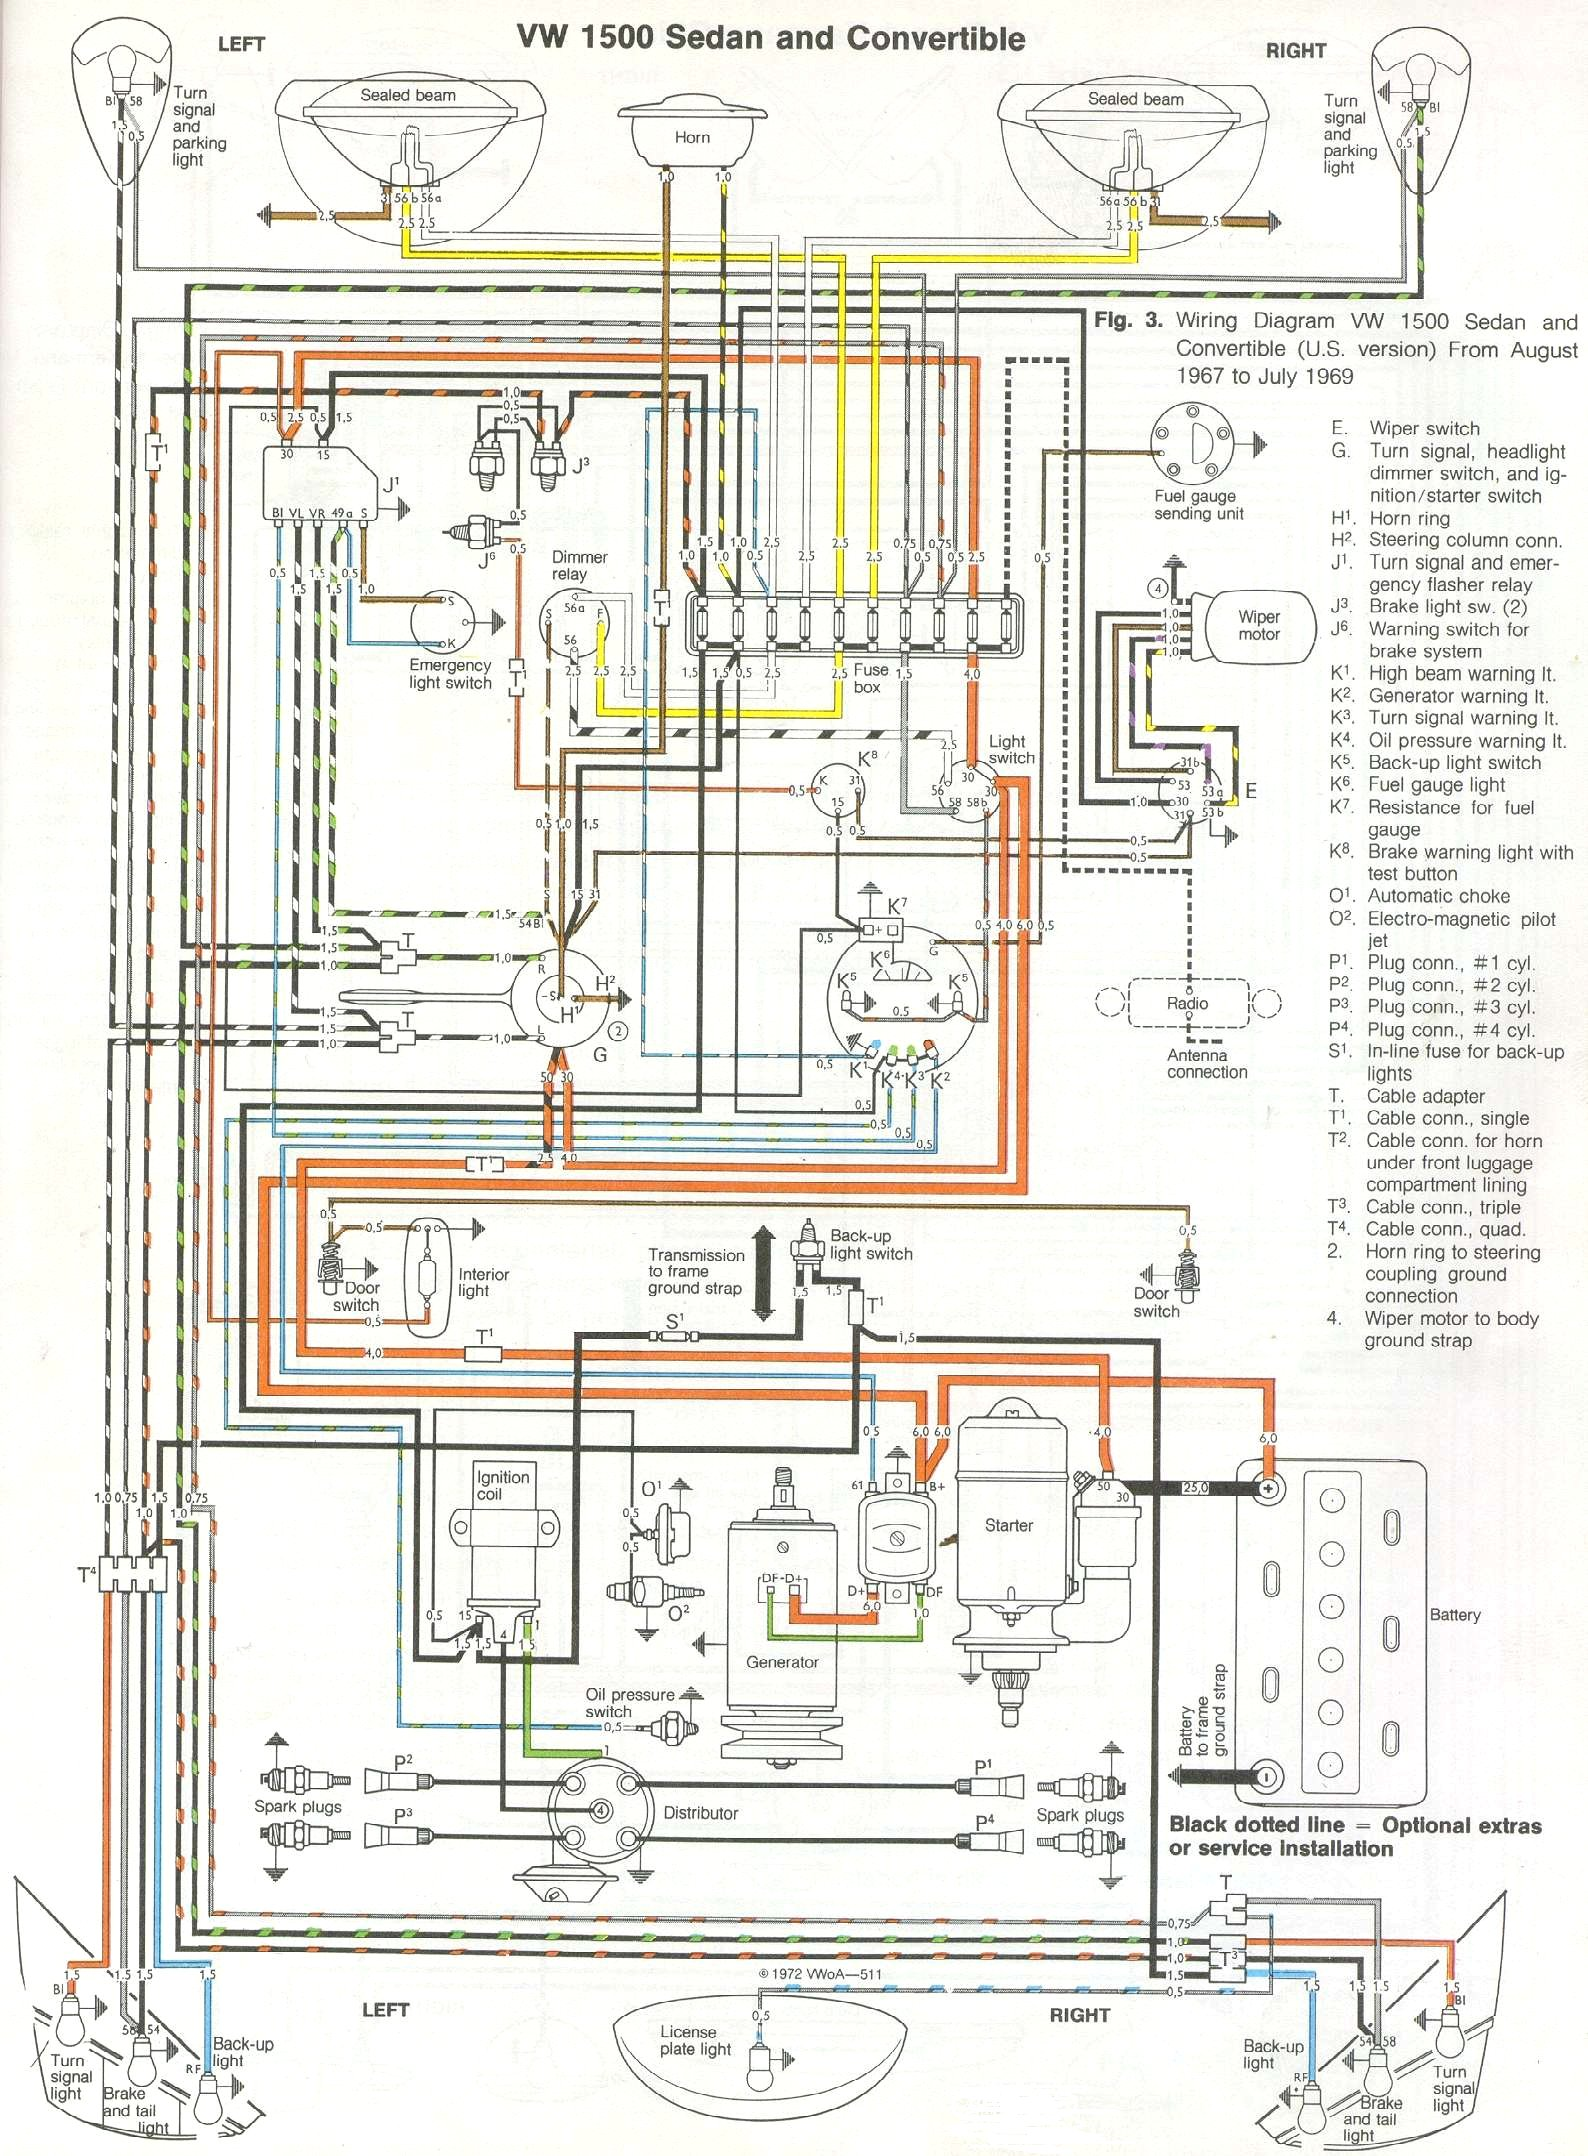 1969 71 beetle wiring diagram thegoldenbug com rh thegoldenbug com Wire Connector Color Code Trailer Wiring Color Code